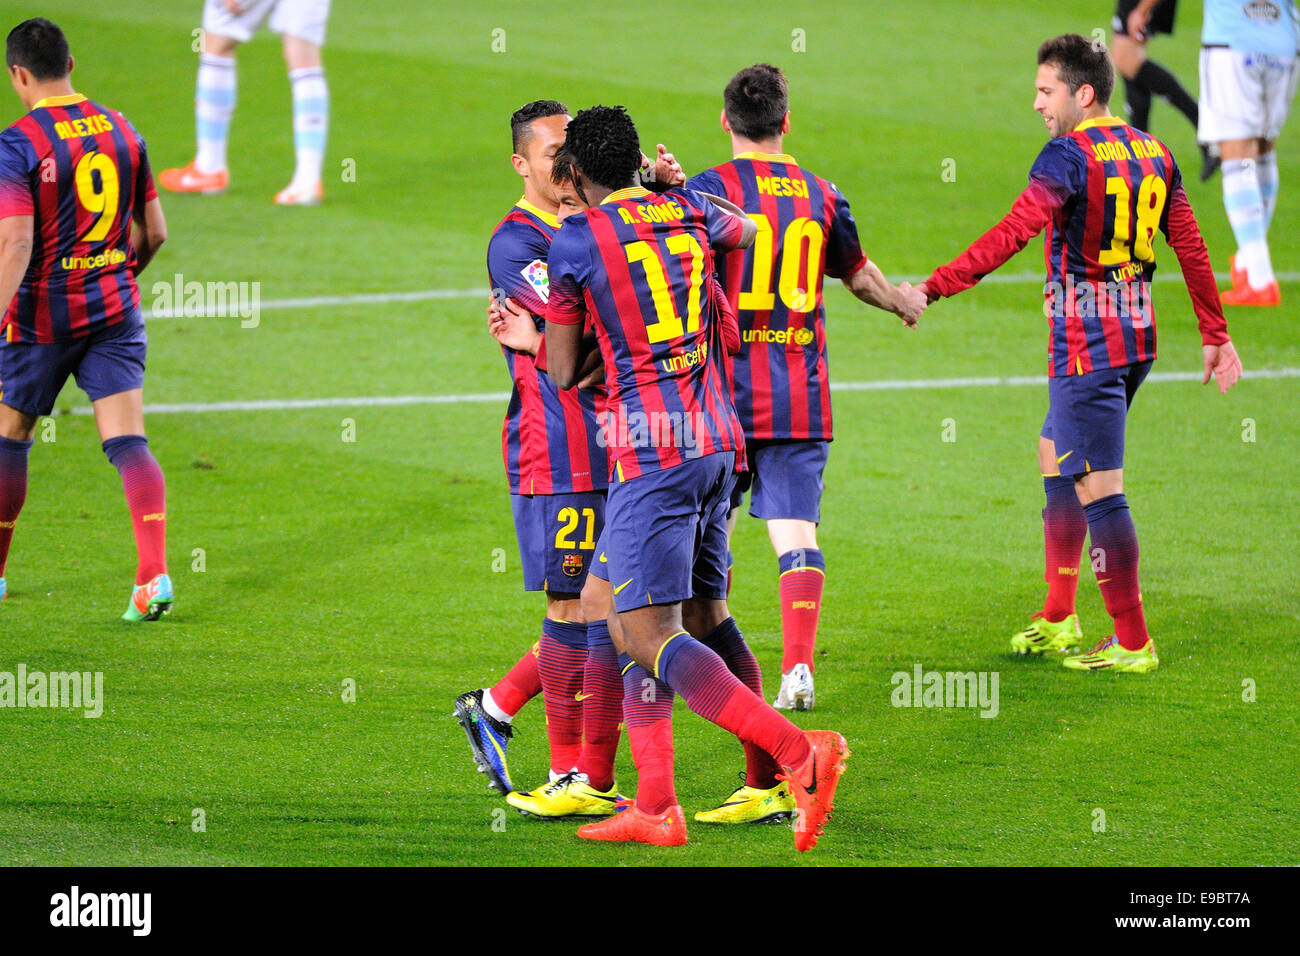 BARCELONA - MAR 26: F.C. Barcelona players celebrate a goal at the Camp Nou on the Spanish League. - Stock Image